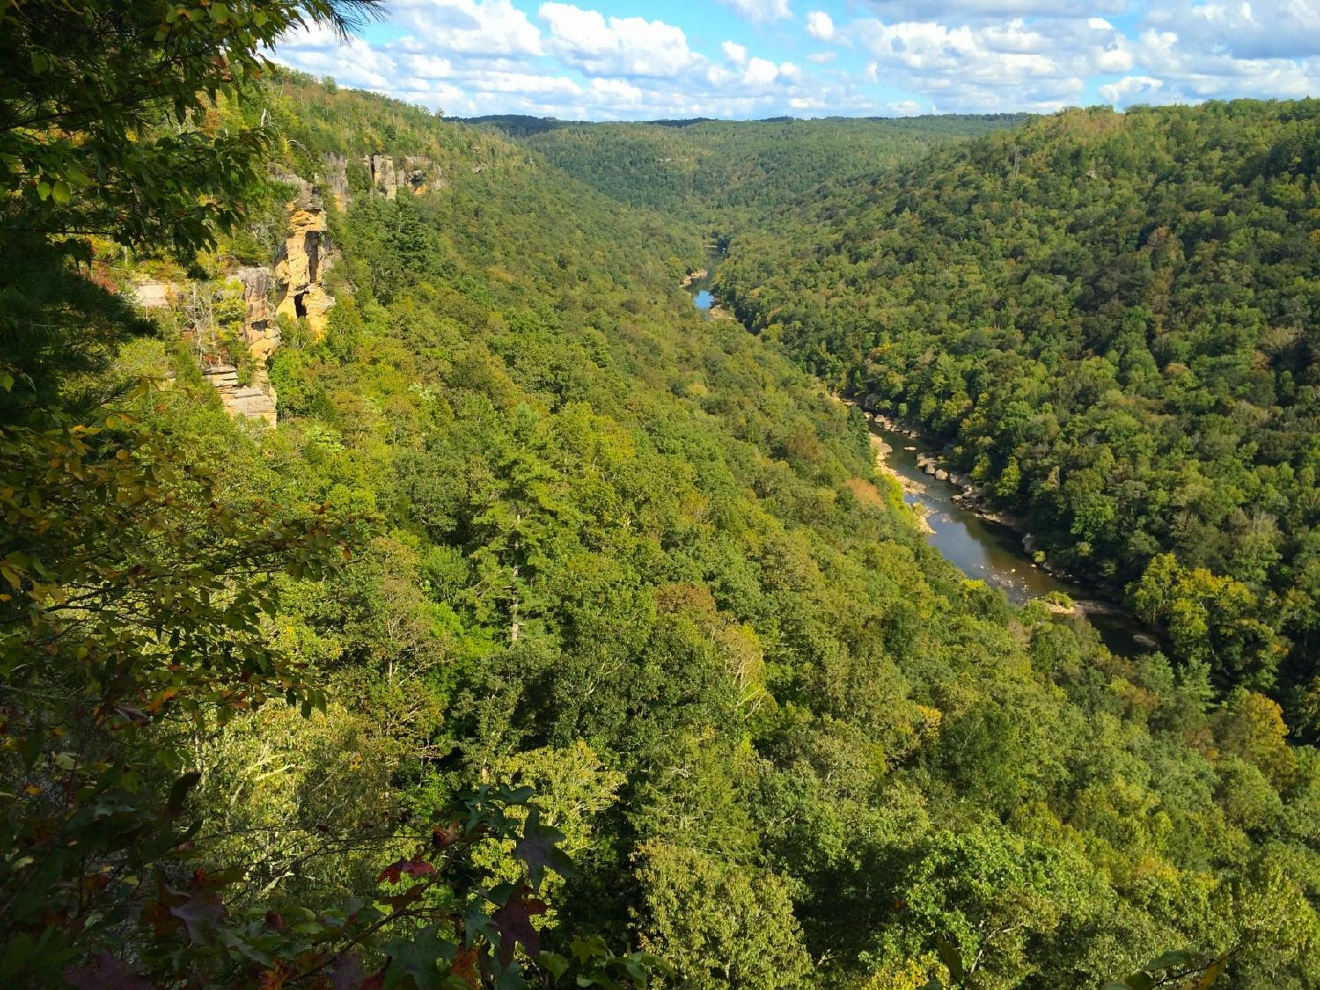 #8 - BIG SOUTH FORK, TENNESSEE (Distance from Downtown Cincy: approx. 4 hours) / Image: Jen Seiser